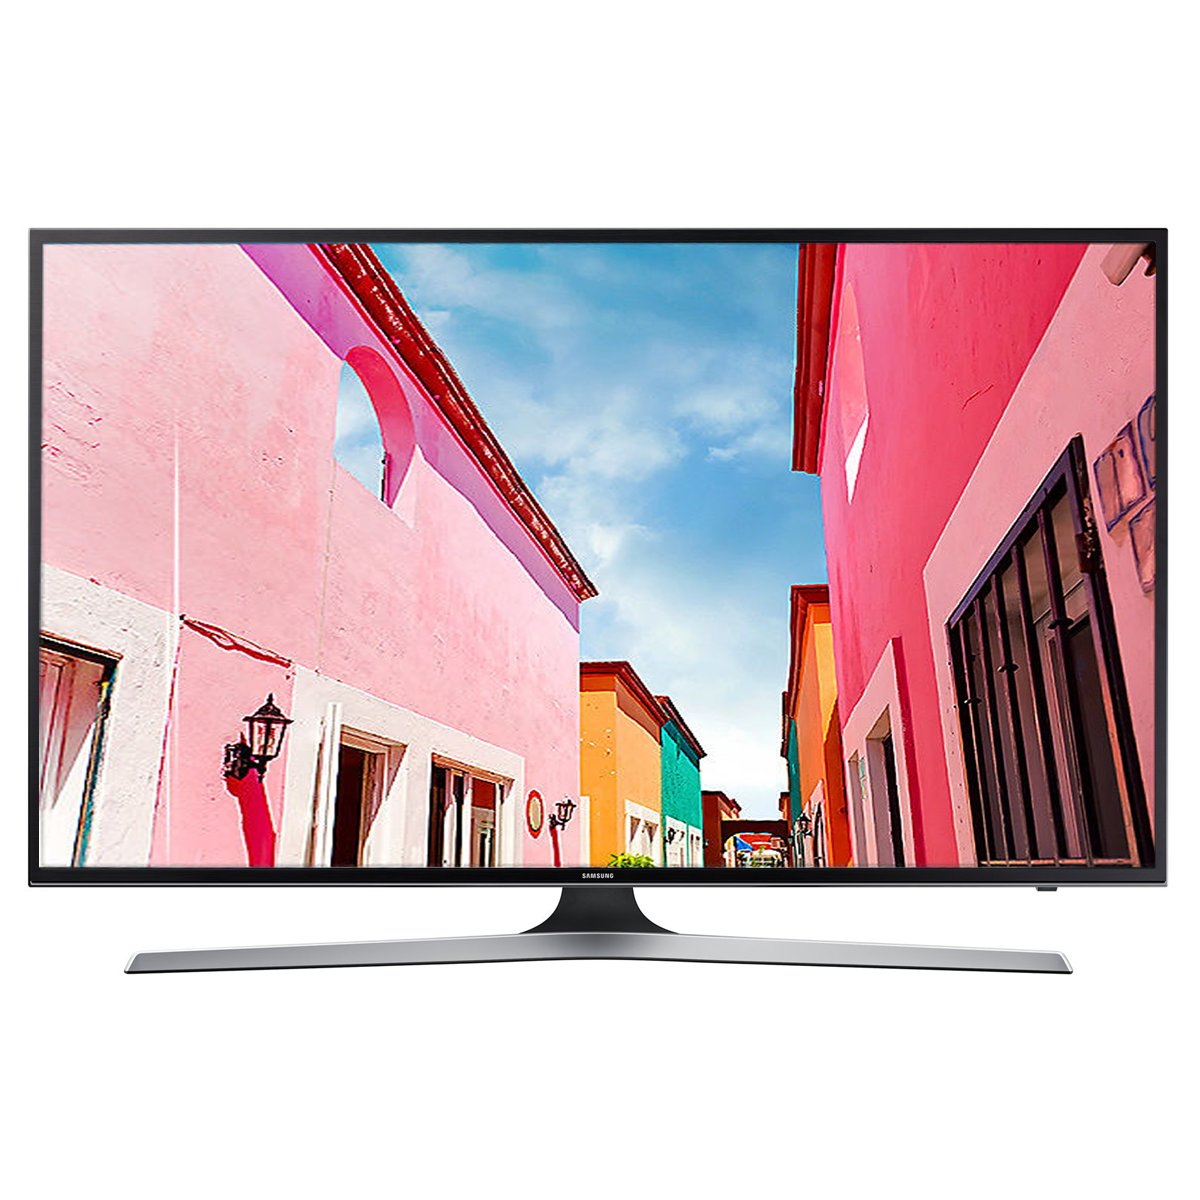 646a53973fe Samsung UA75MU6100 75 Inch 190cm Smart 4K Ultra HD LED LCD TV. This product  is not available